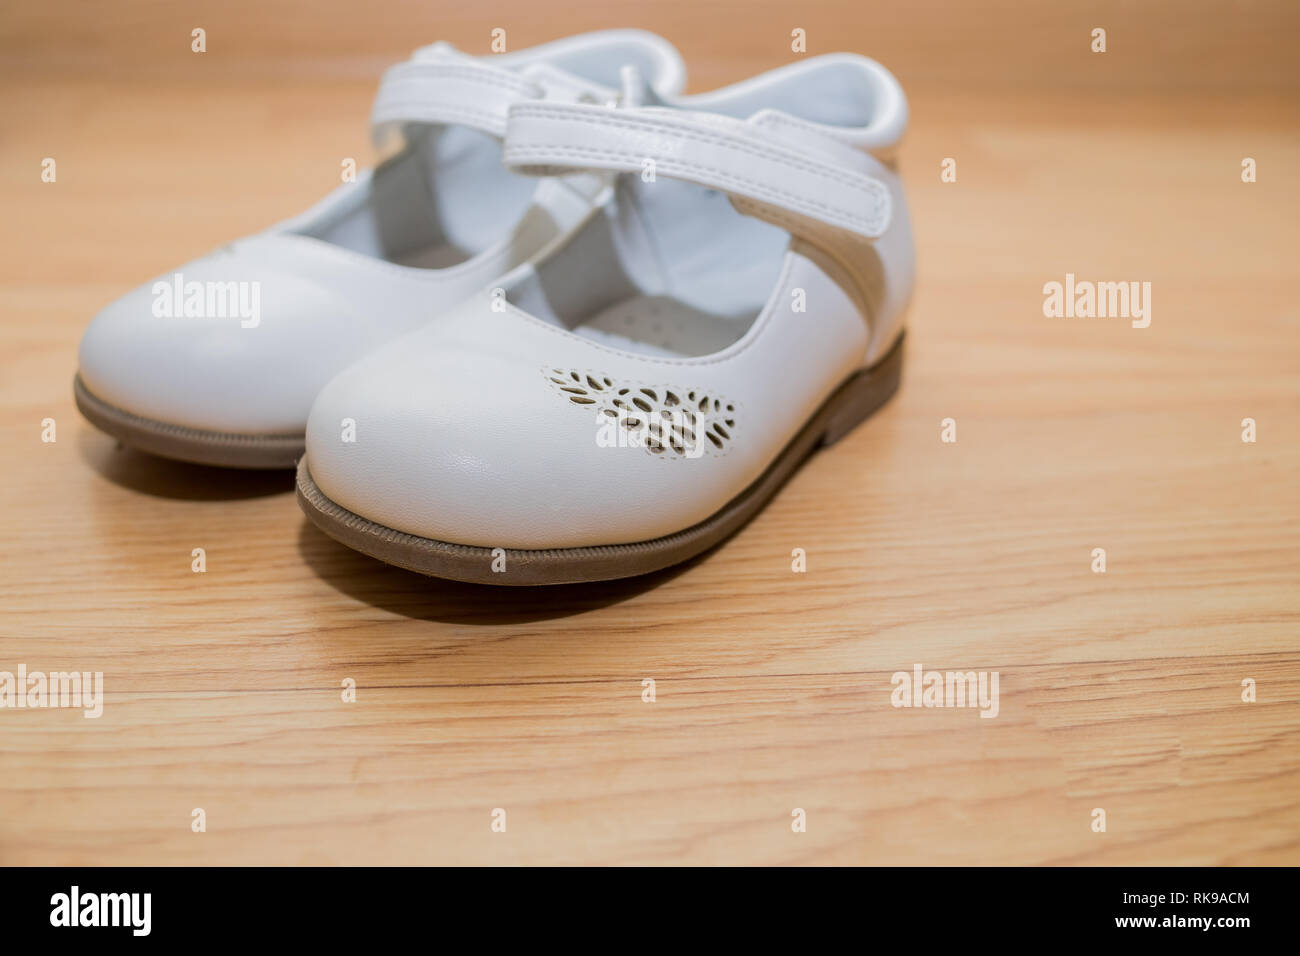 63d4a4d0426a5 Color female shoes. Kids footwear isolated on wooden background.white  leather baby shoes,